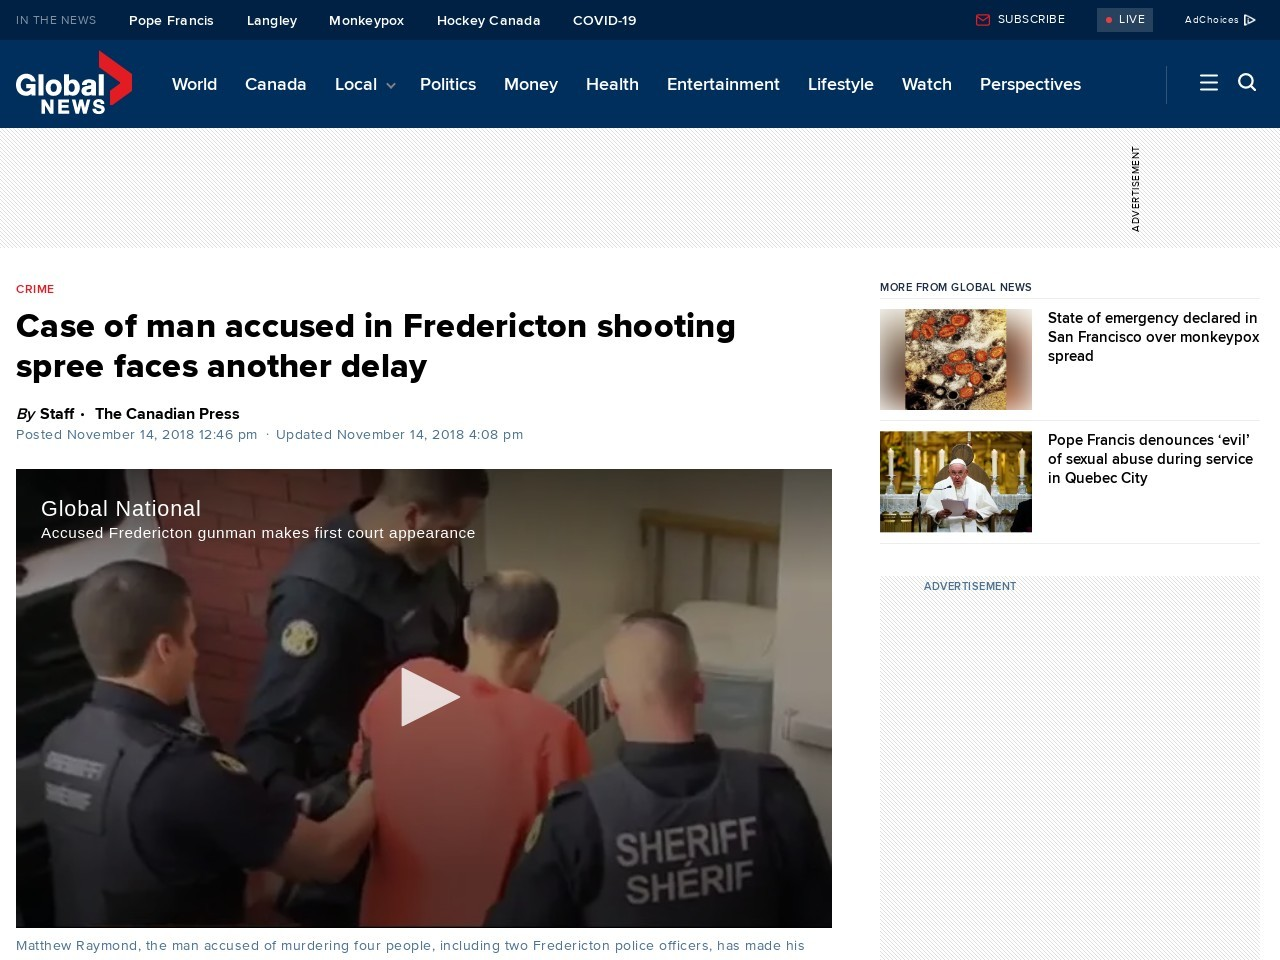 Case of man accused in Fredericton shooting spree faces another delay